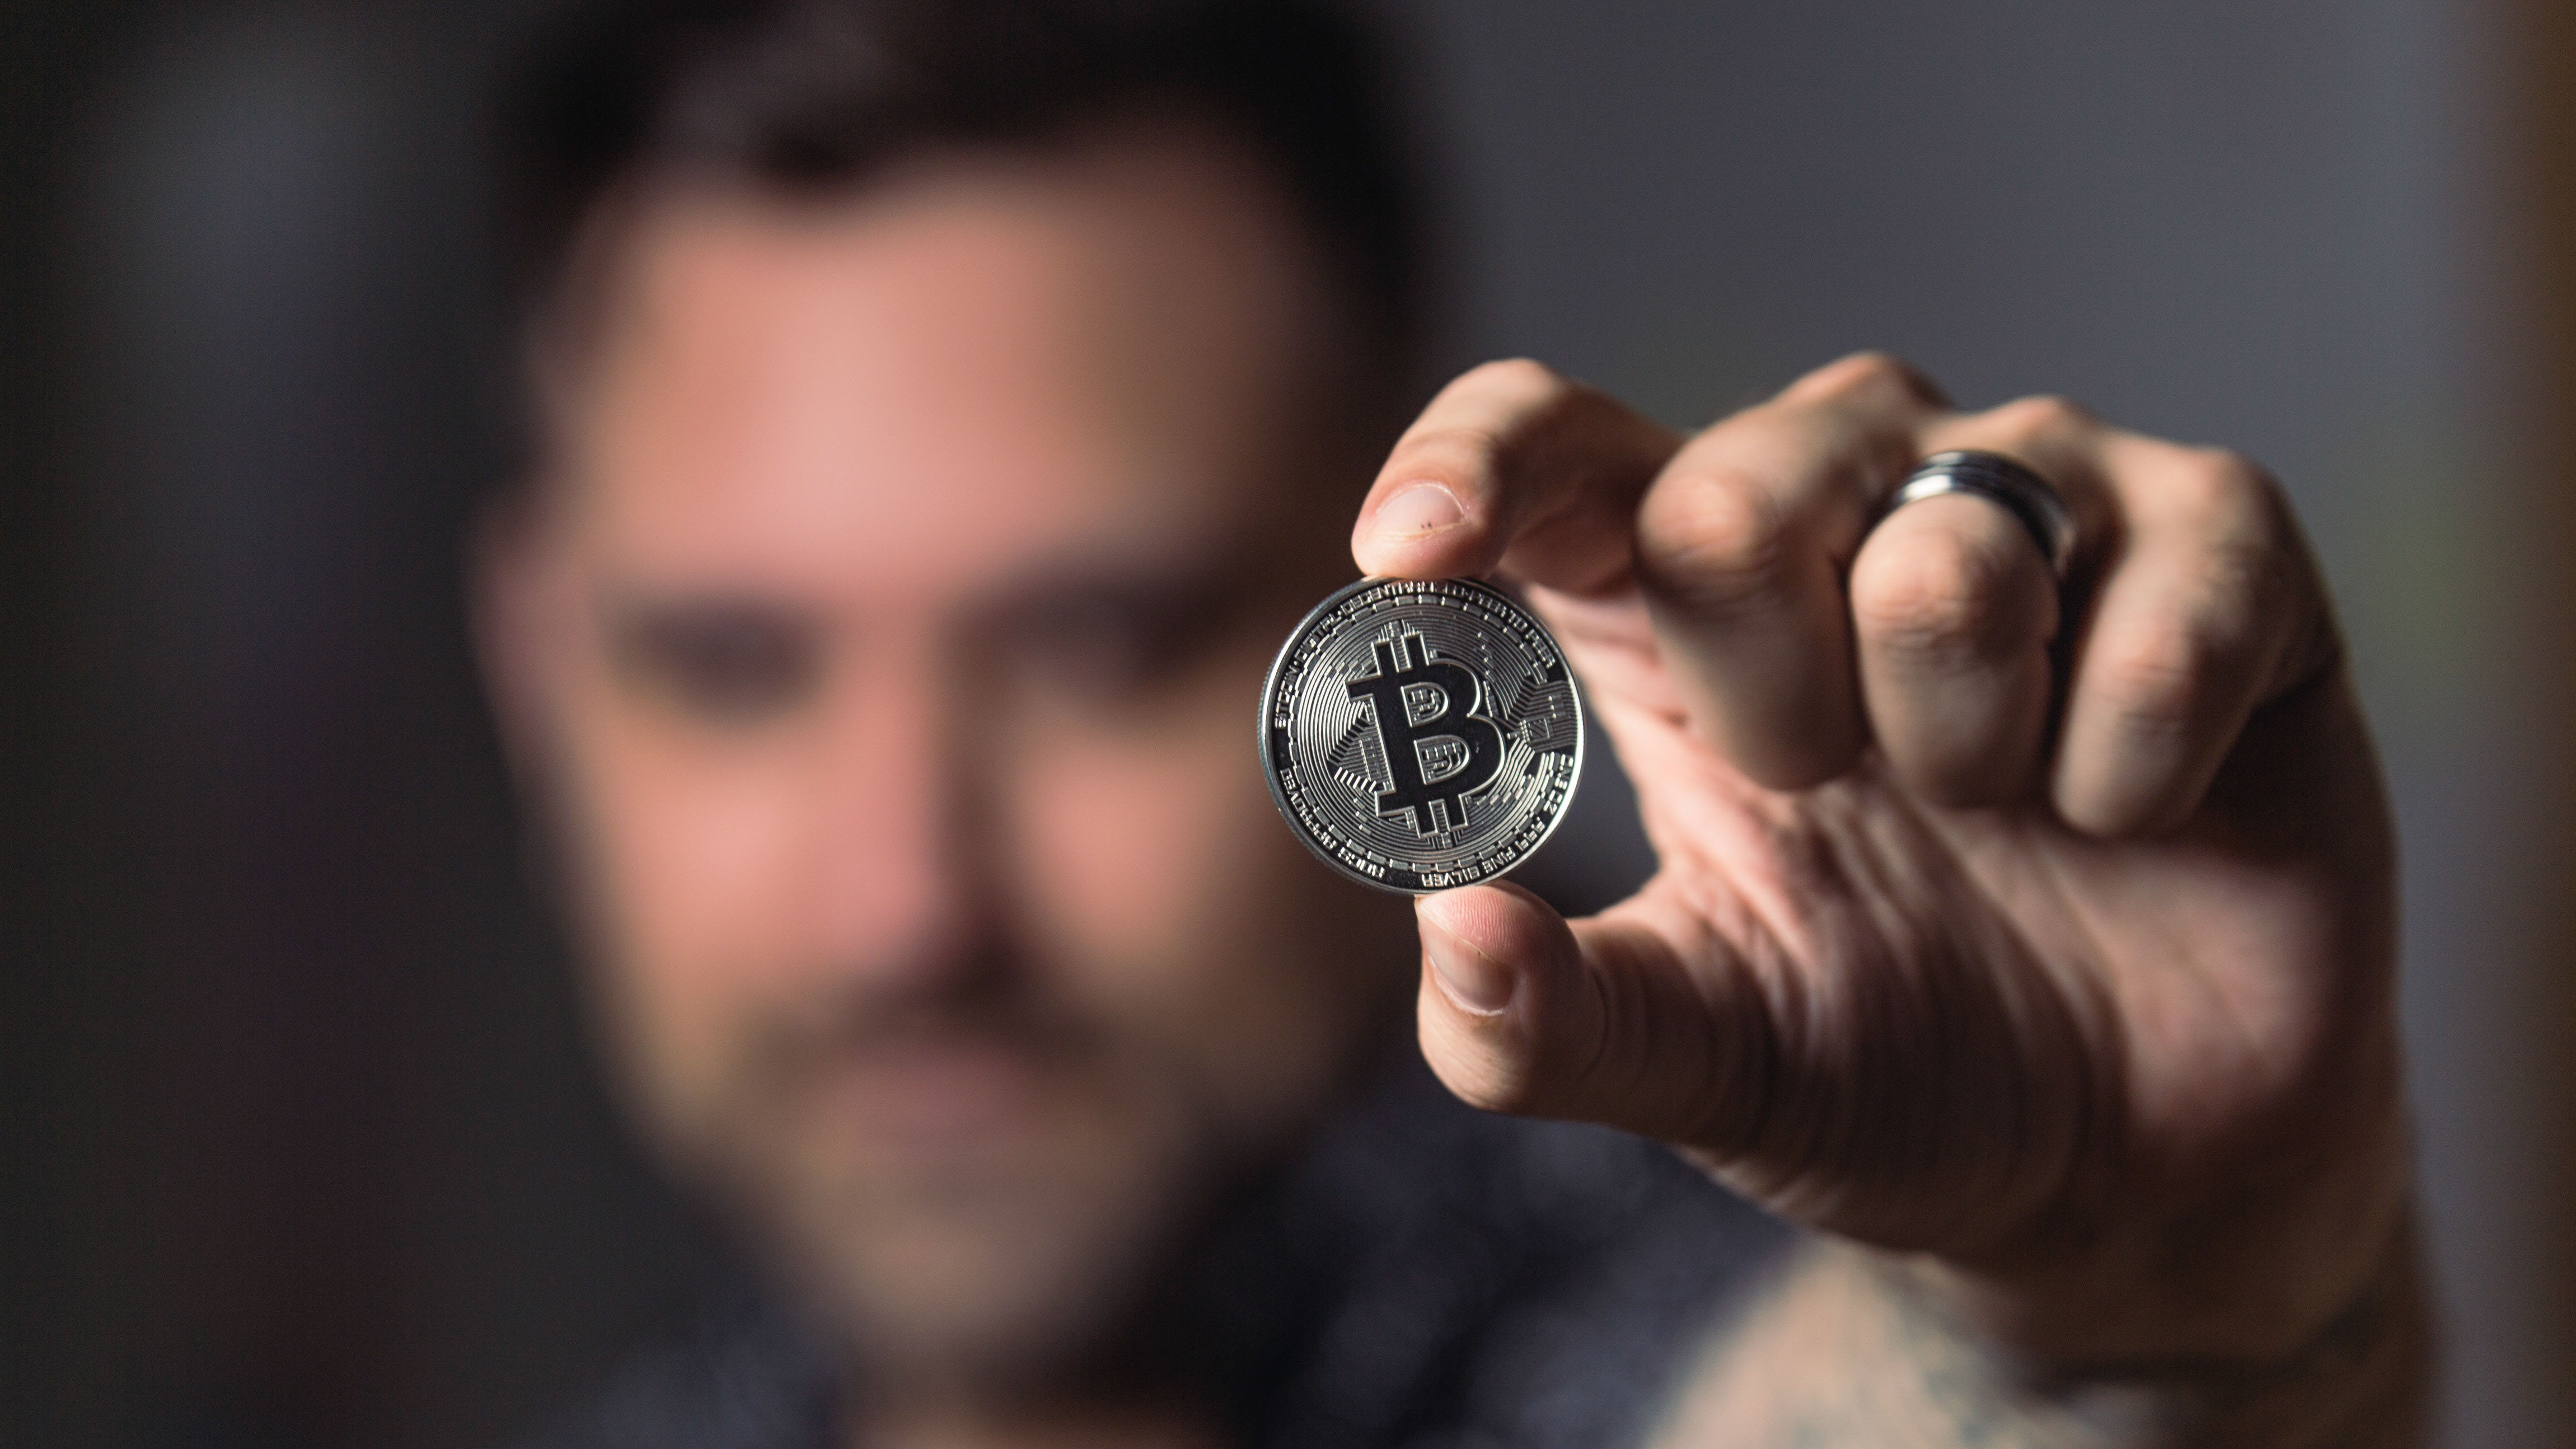 Man holds out silver coin with bitcoin symbol, he is blurred in the background.